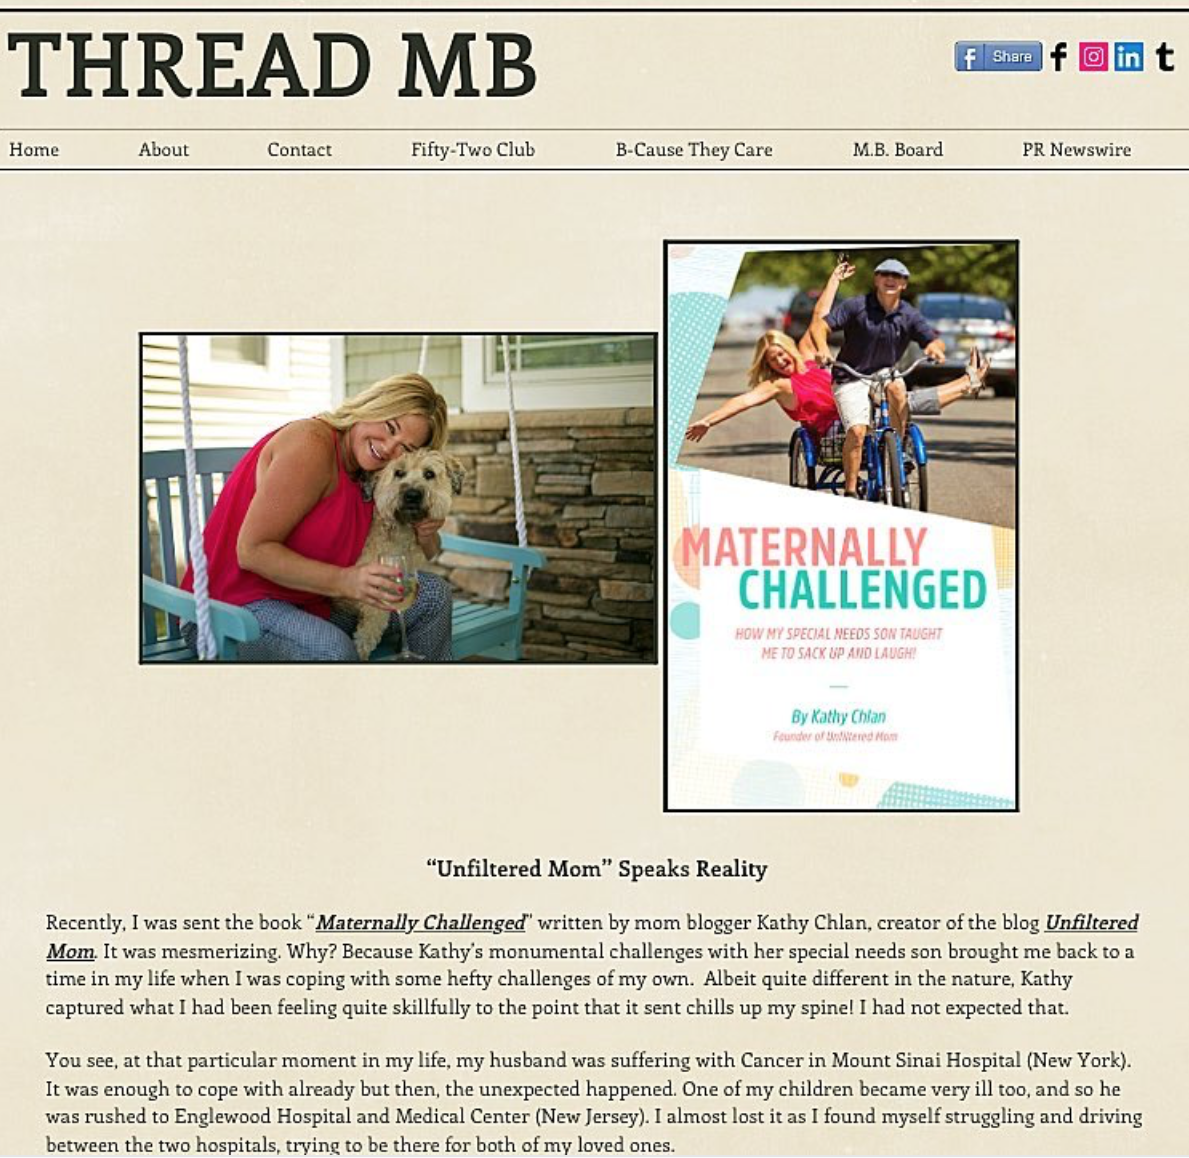 Thread MB - Interview for 'Maternally Challenged' Book